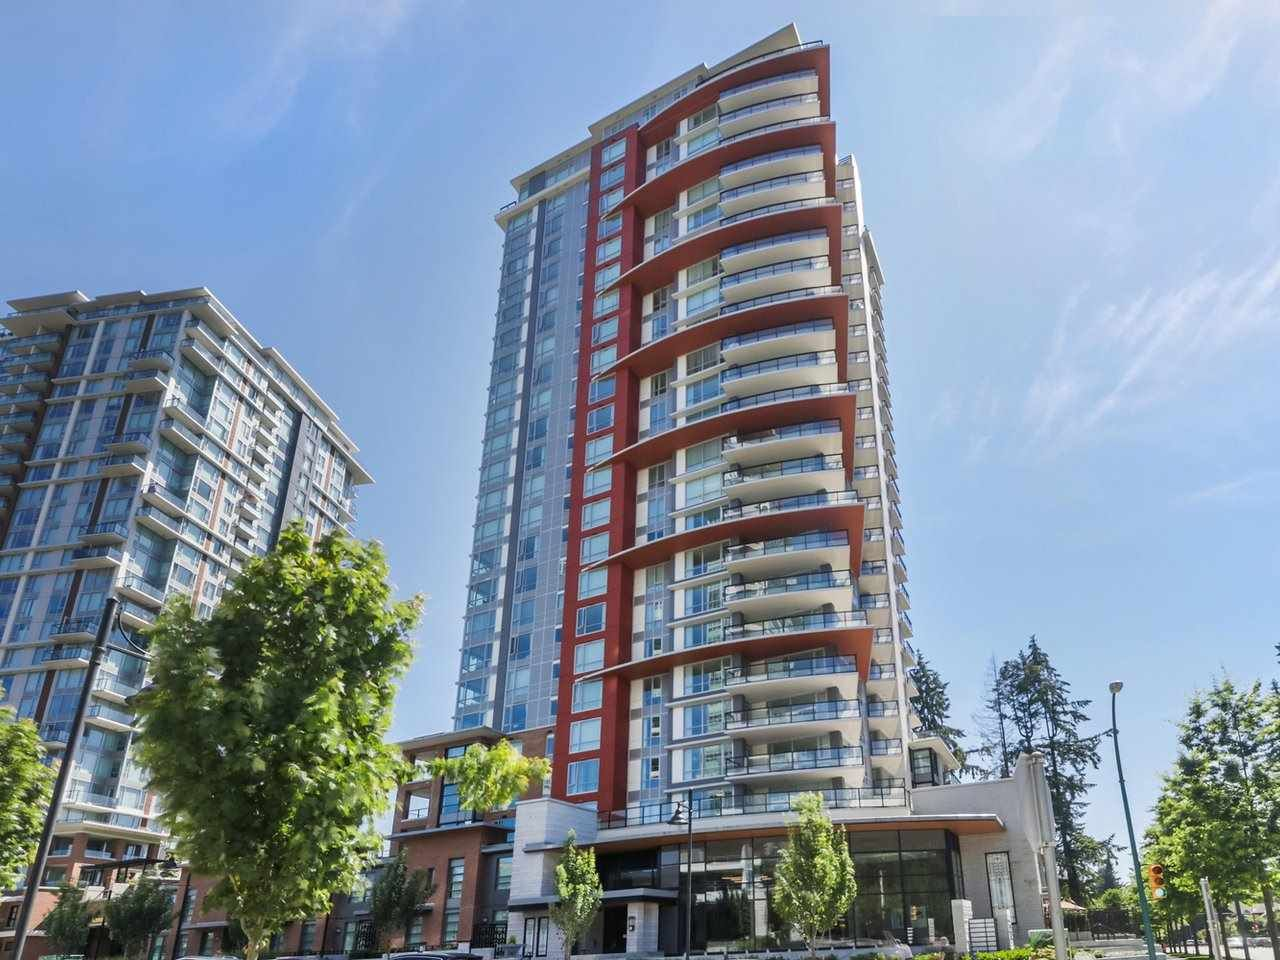 Main Photo: 506 3096 WINDSOR Gate in Coquitlam: New Horizons Condo for sale : MLS®# R2479633